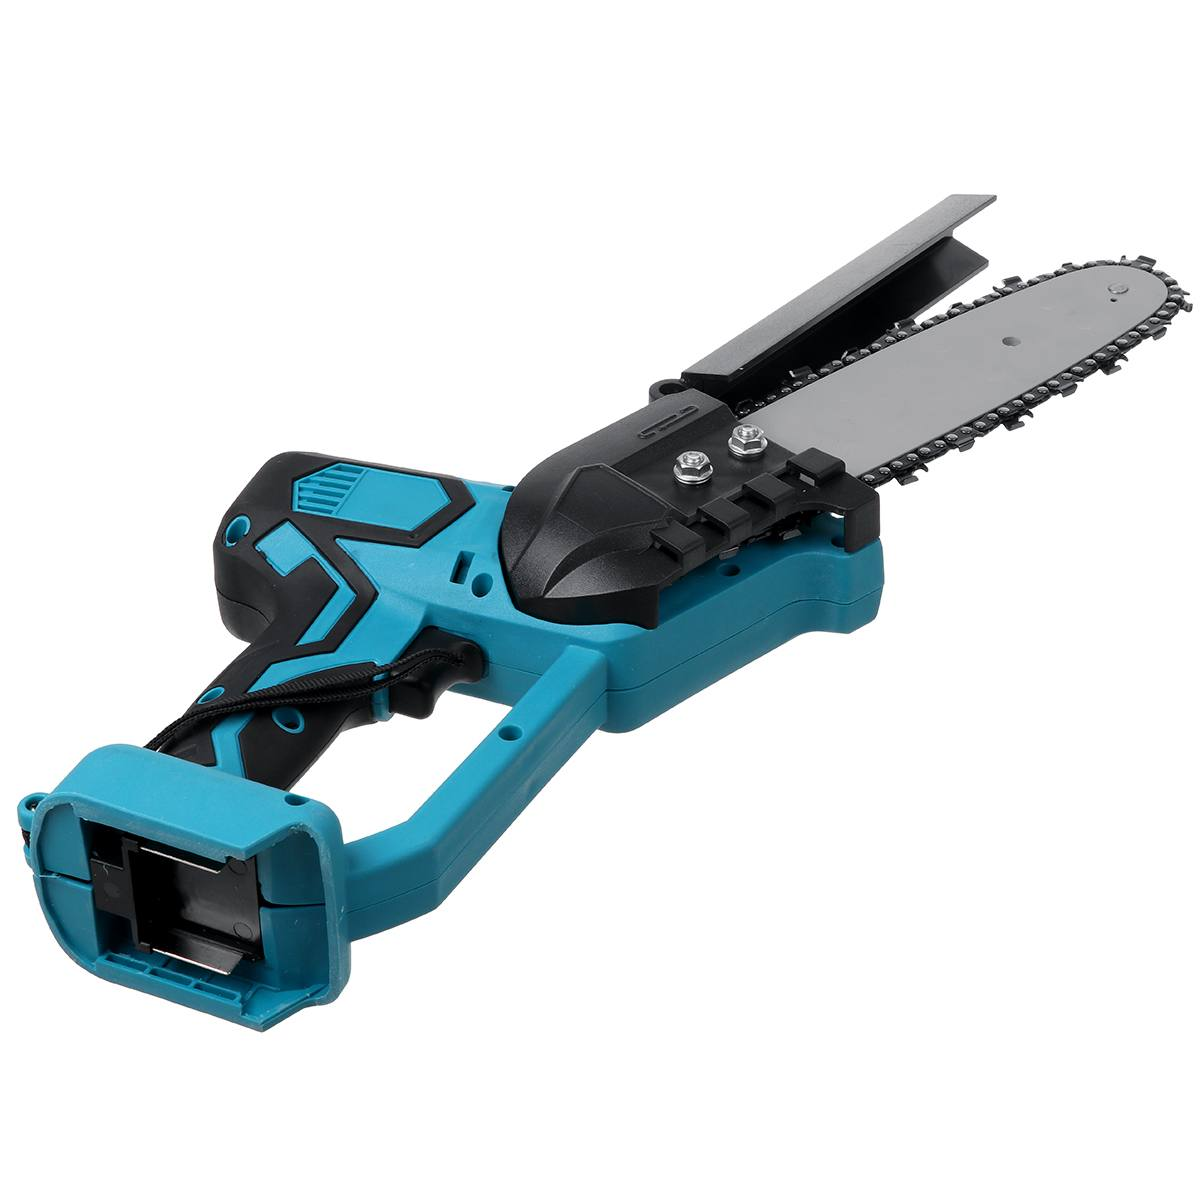 Tools : 1080W 8 inch Electric Saw Chainsaw Wood Cutters Bracket Power Tool Chain Saw For Makita 18V Battery  Tool Only